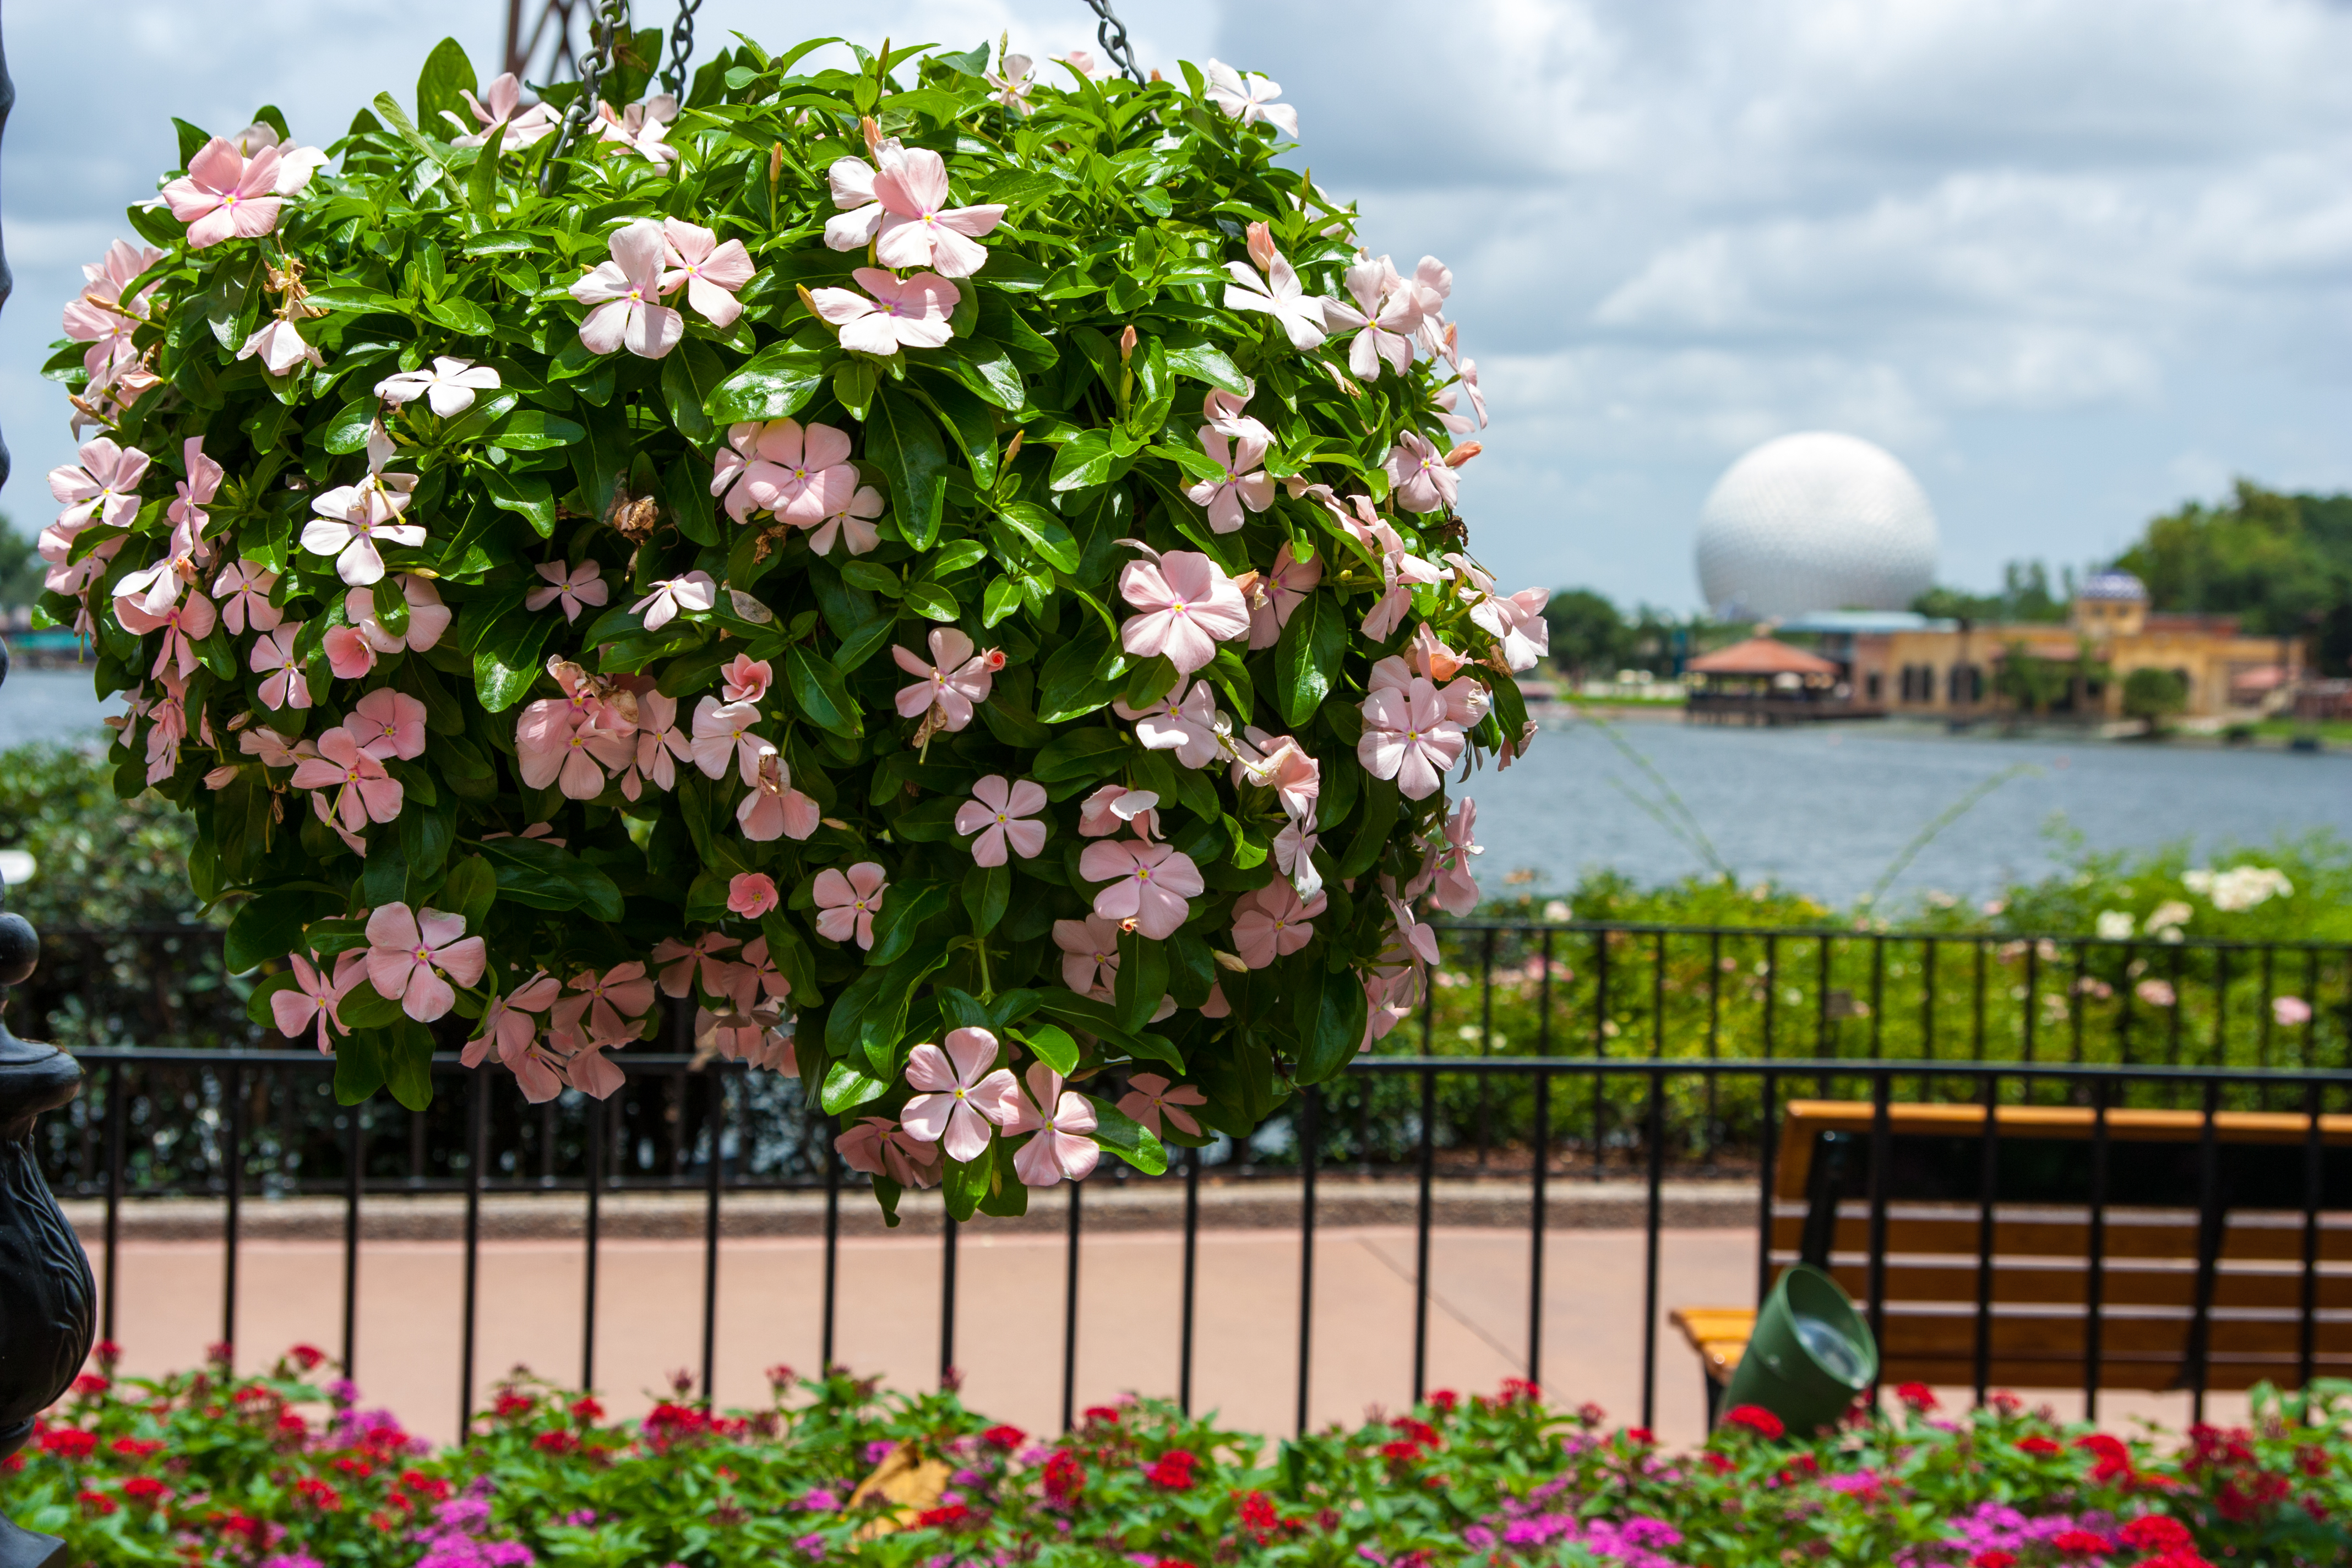 Epcot flower and garden festival 2014 the beer beers and ears for Disney flower and garden festival